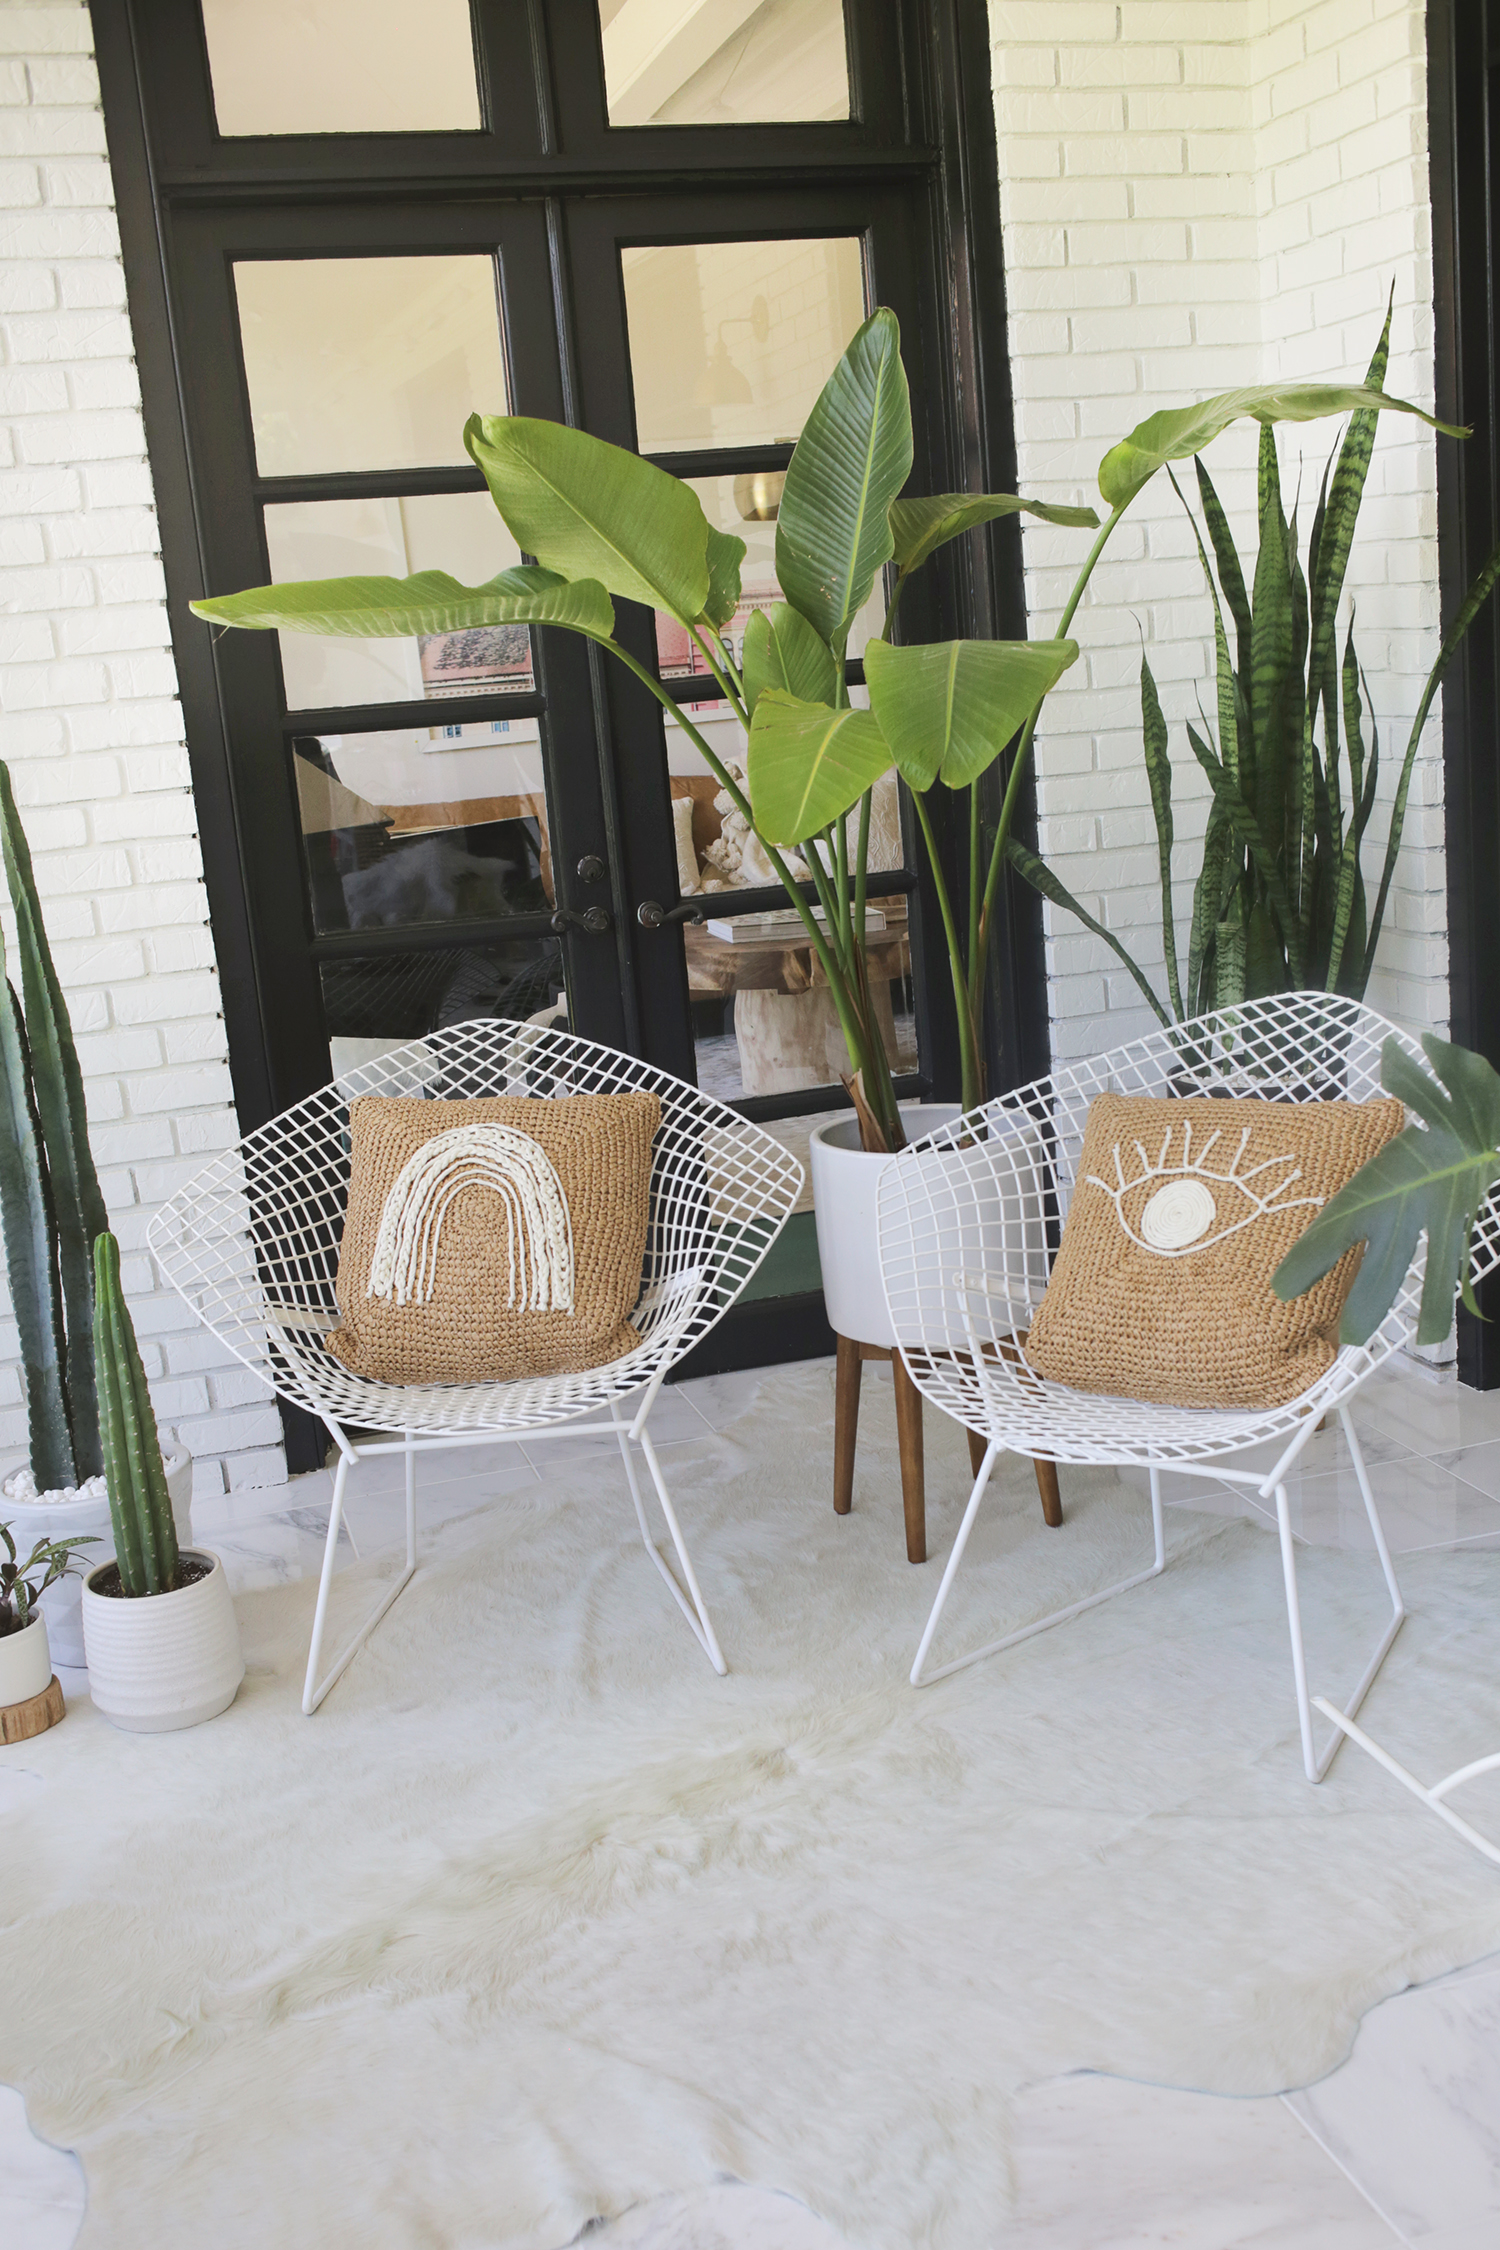 How To Weather Proof Your Metal Furniture For The Outdoors